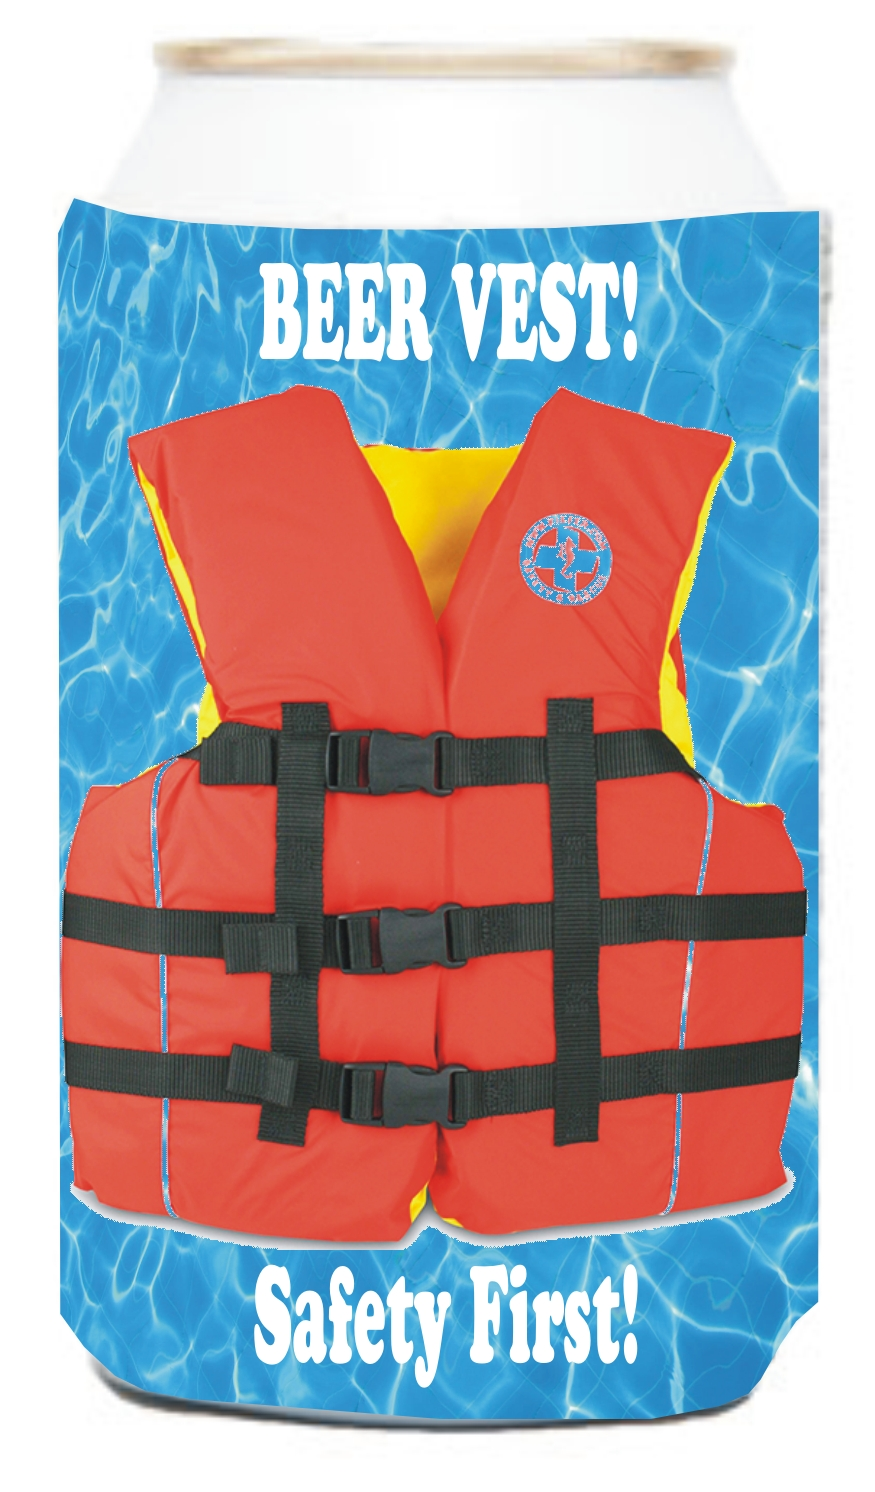 Custom Imprinted custom-imprinted-life-jacket-vest-can-coolers